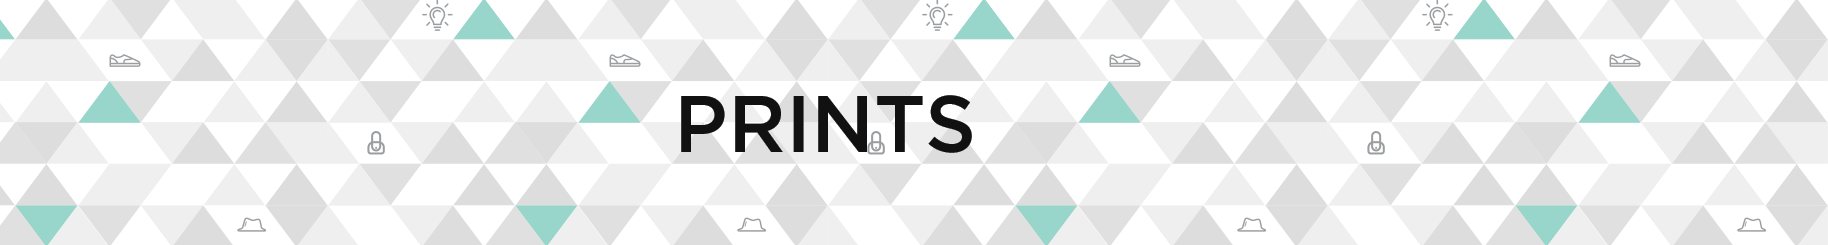 header-prints.png